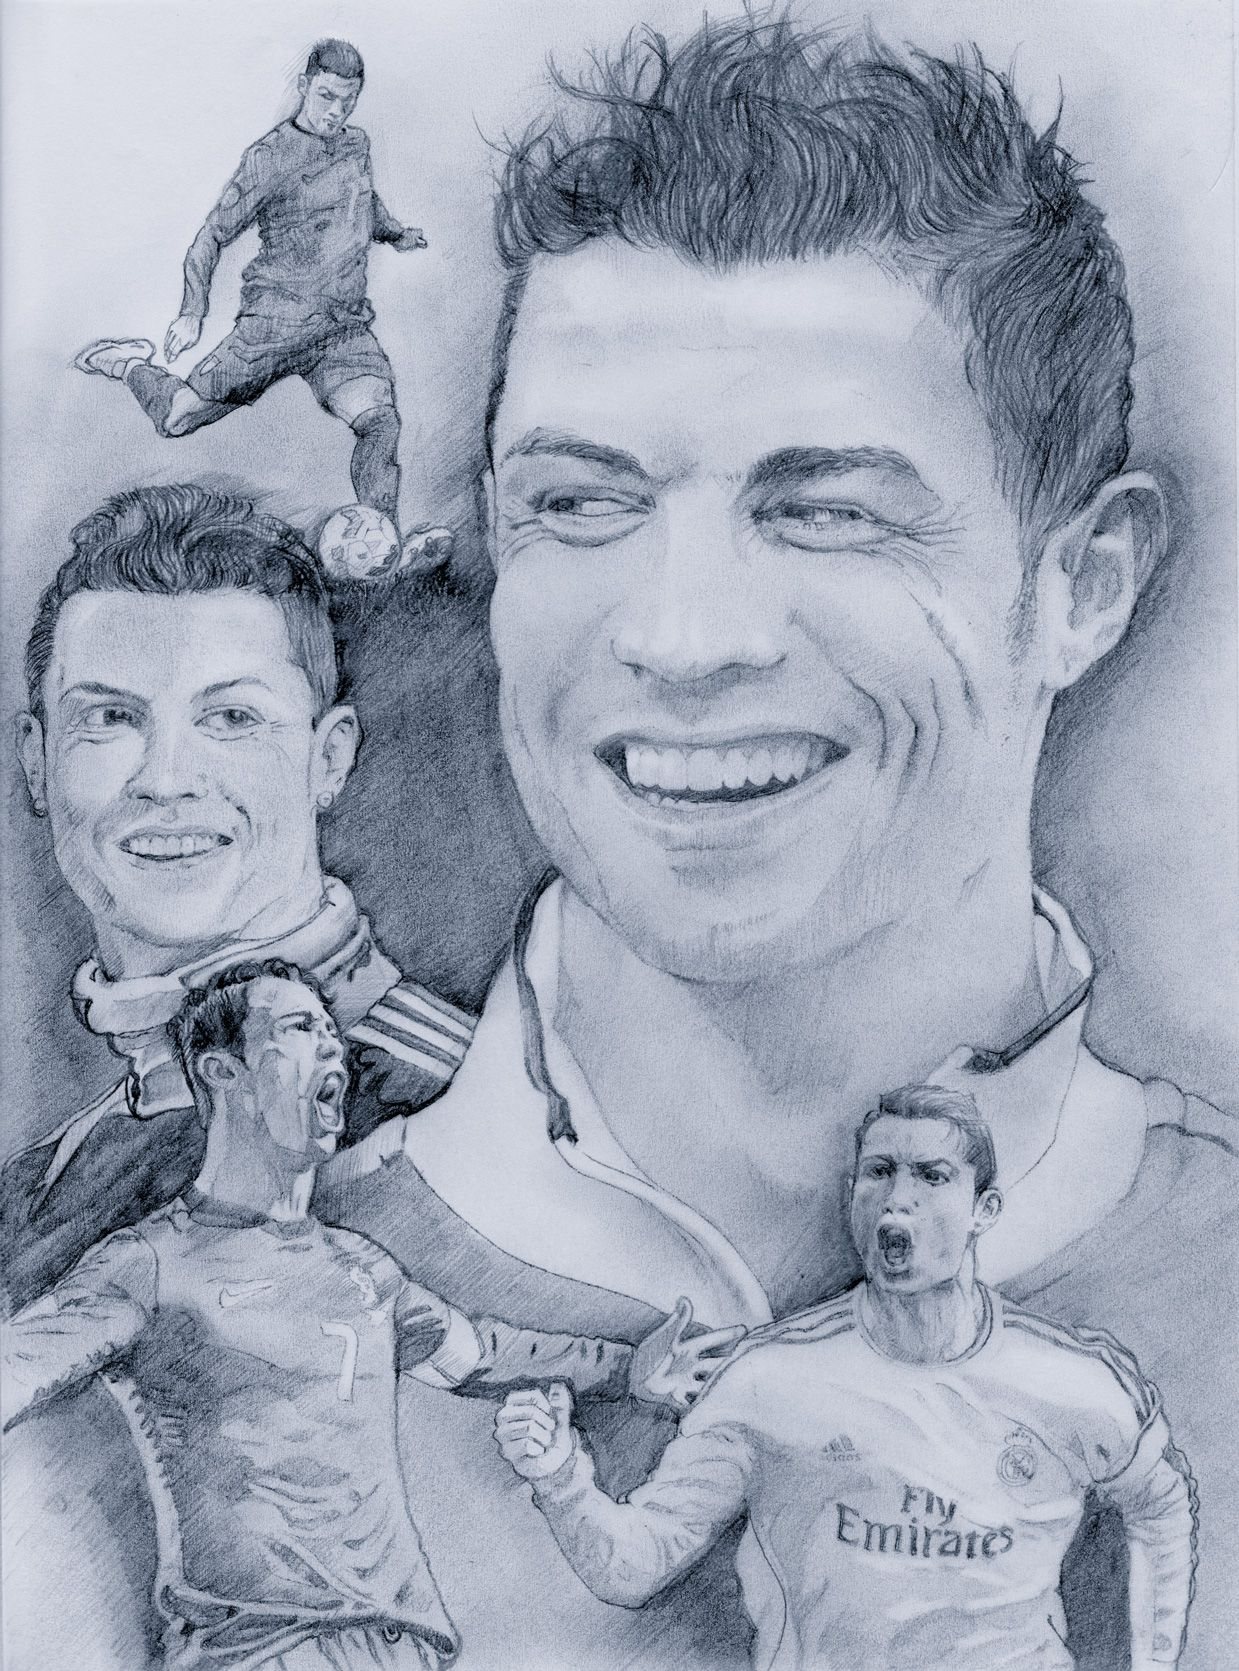 1239x1671 One Of My Favorite Footballsoccer Players. Cristiano Ronaldo, Cr7